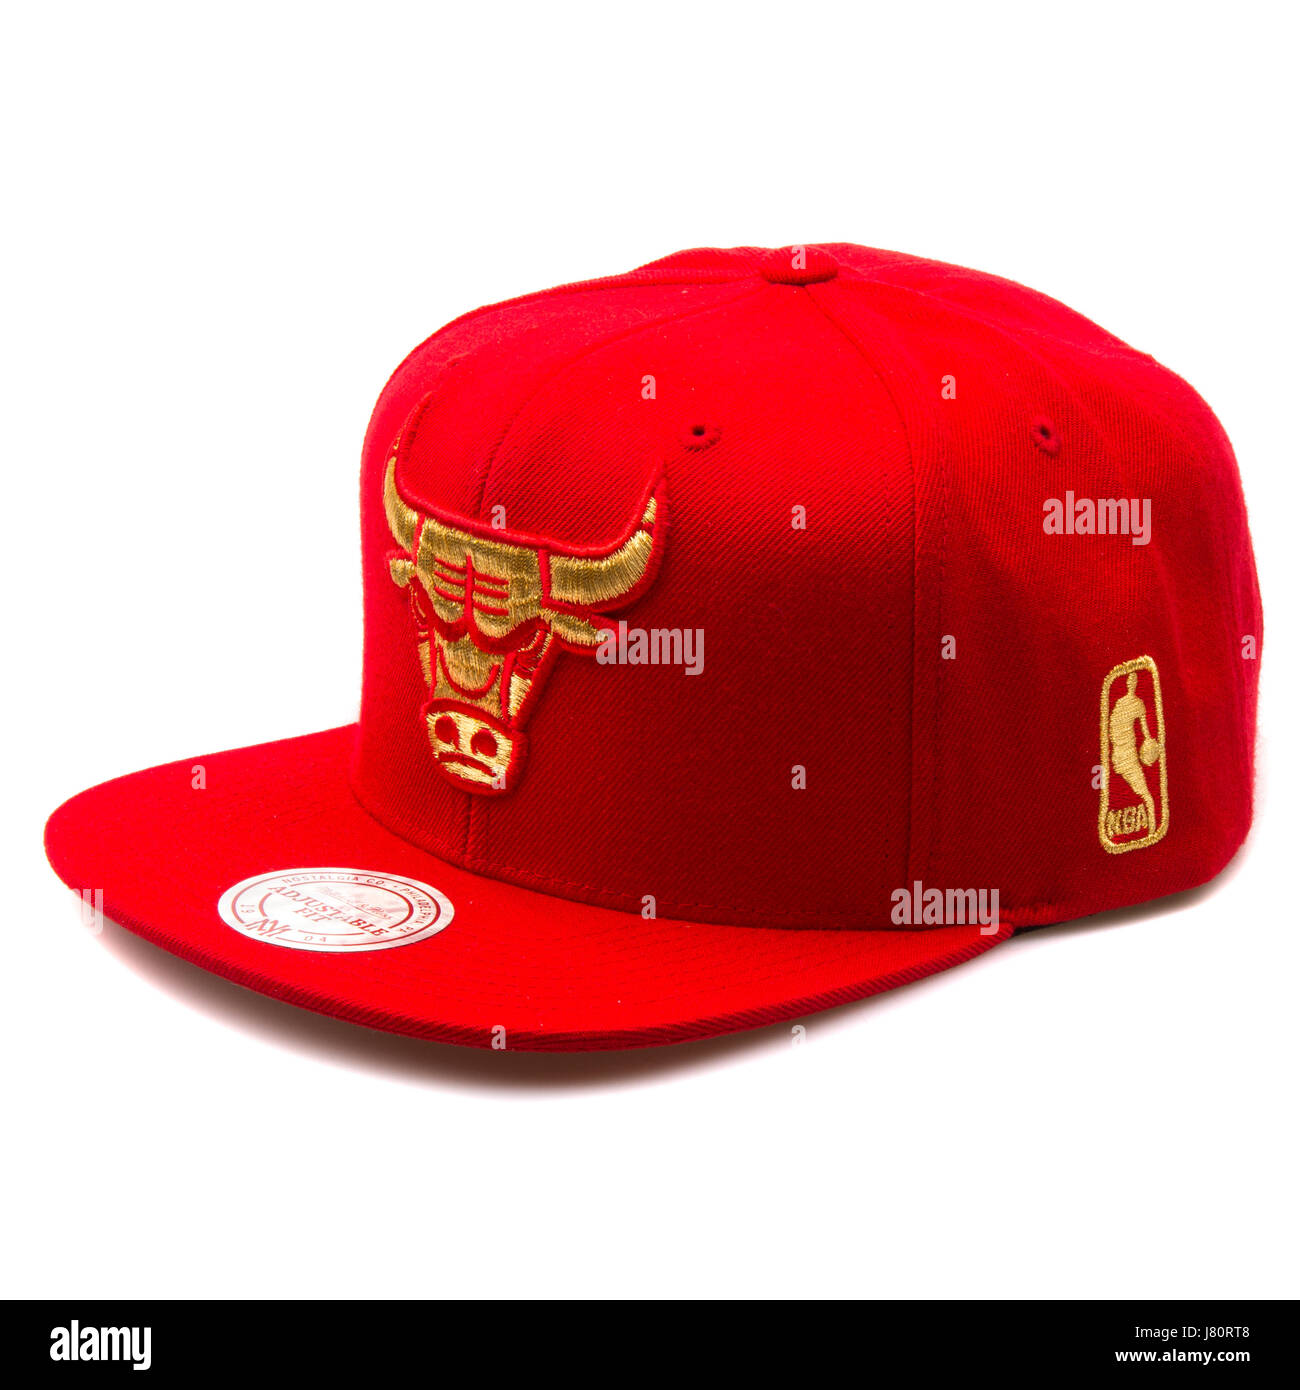 b953a71a135 Mitchell   Ness Red and Gold Chicago Bulls Cap - Stock Image